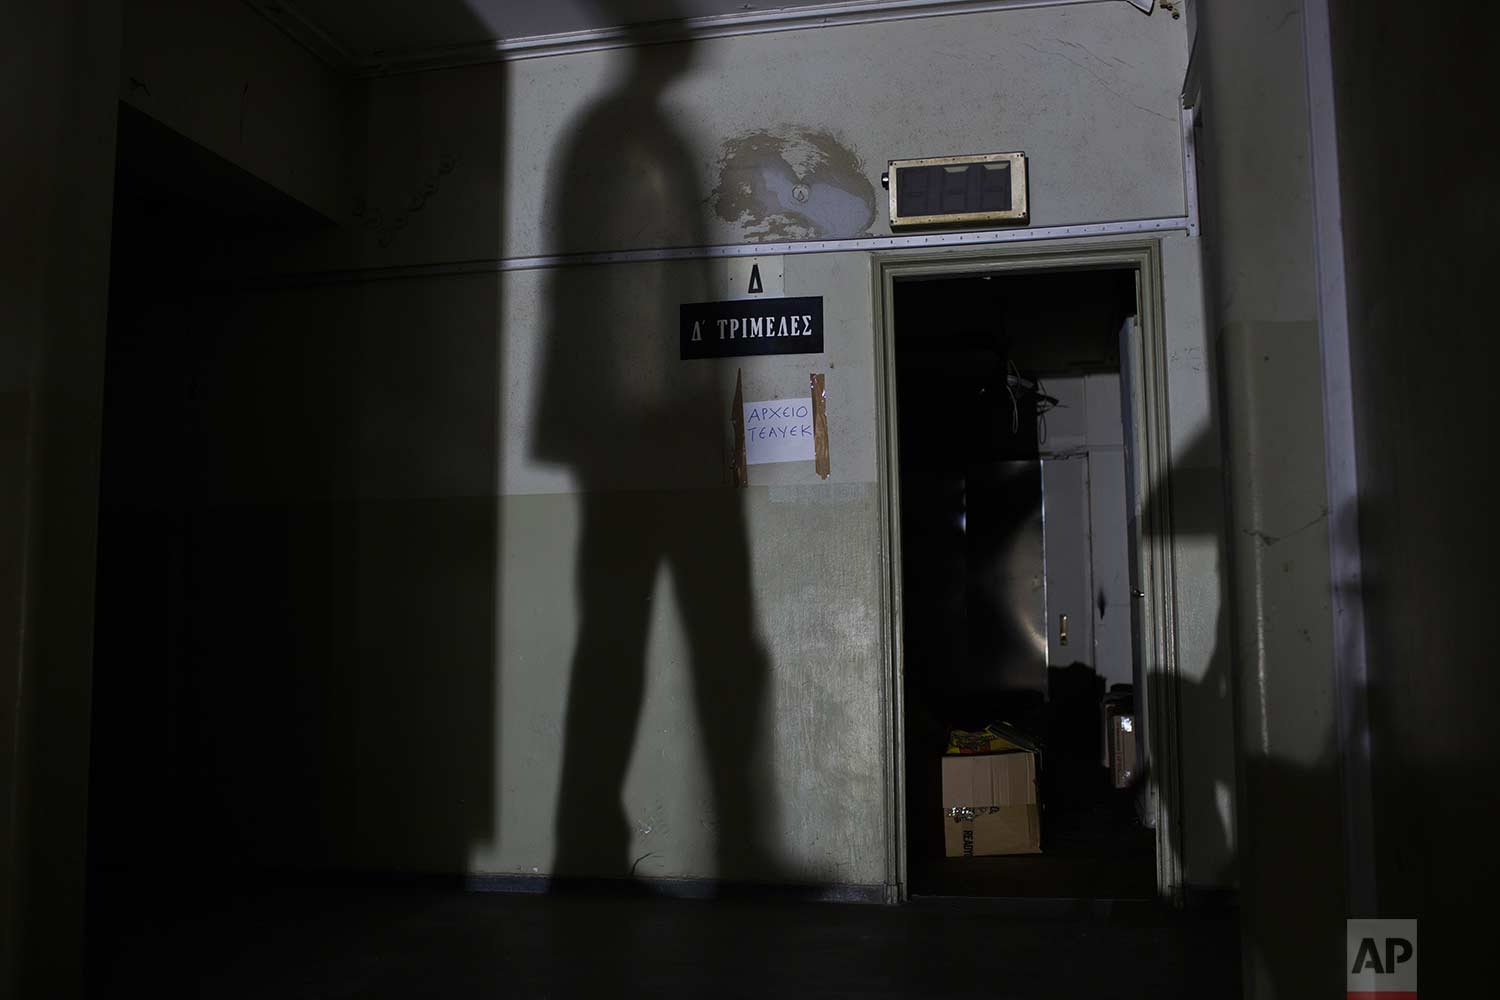 """A man's shadow appears next to a sign reading """"Three-member Court"""" in the former Ambassadeur hotel in Athens. (AP Photo/Petros Giannakouris)"""